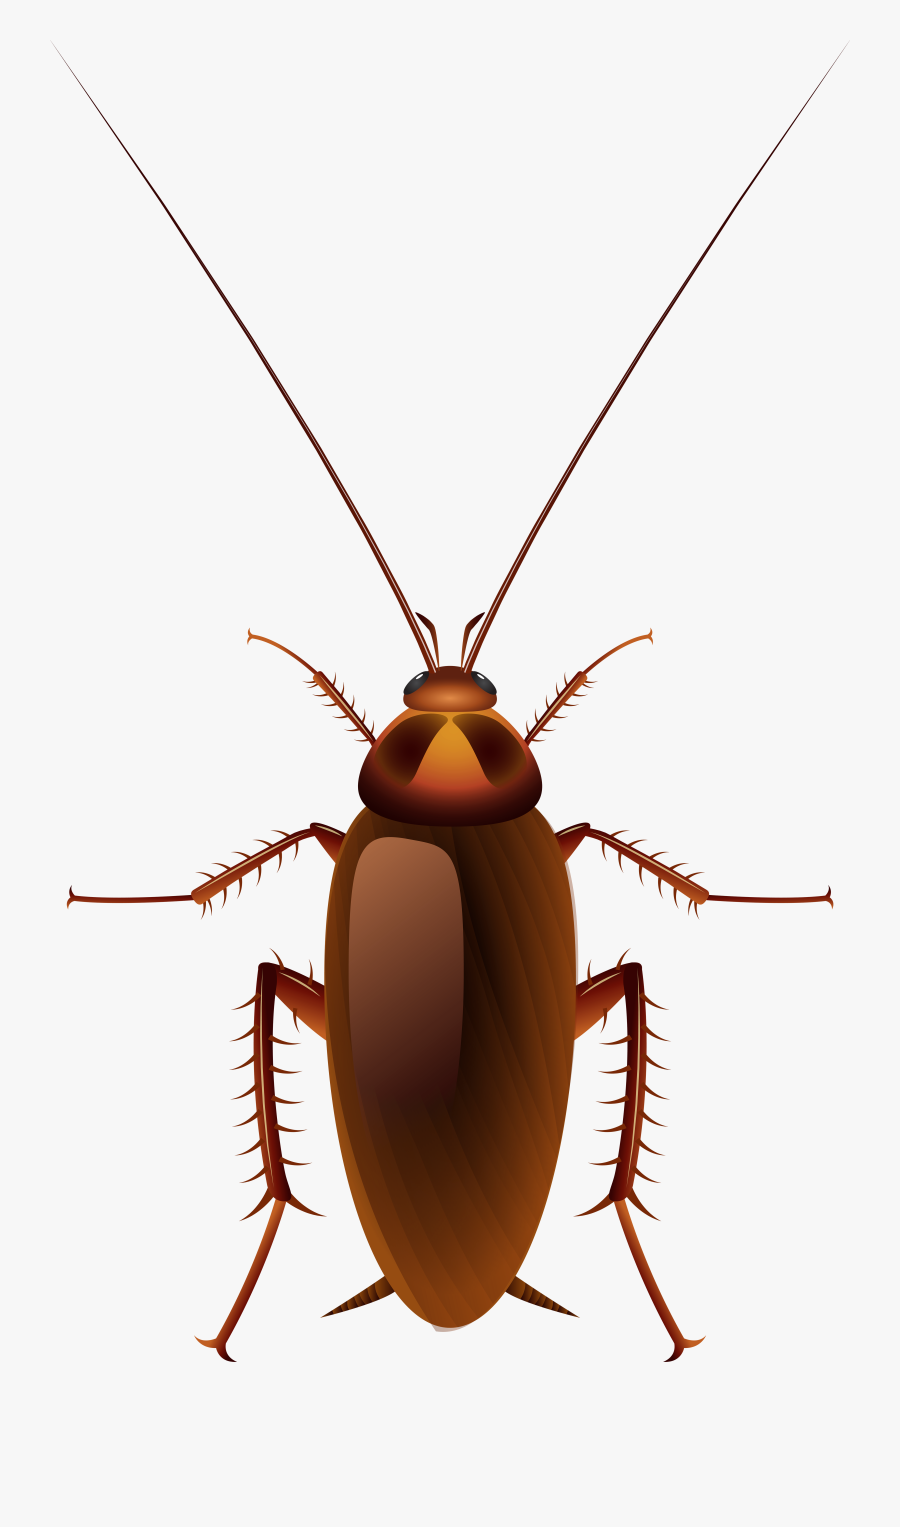 Insects Clipart Beautiful Animal - Black Cockroach Cartoon, Transparent Clipart